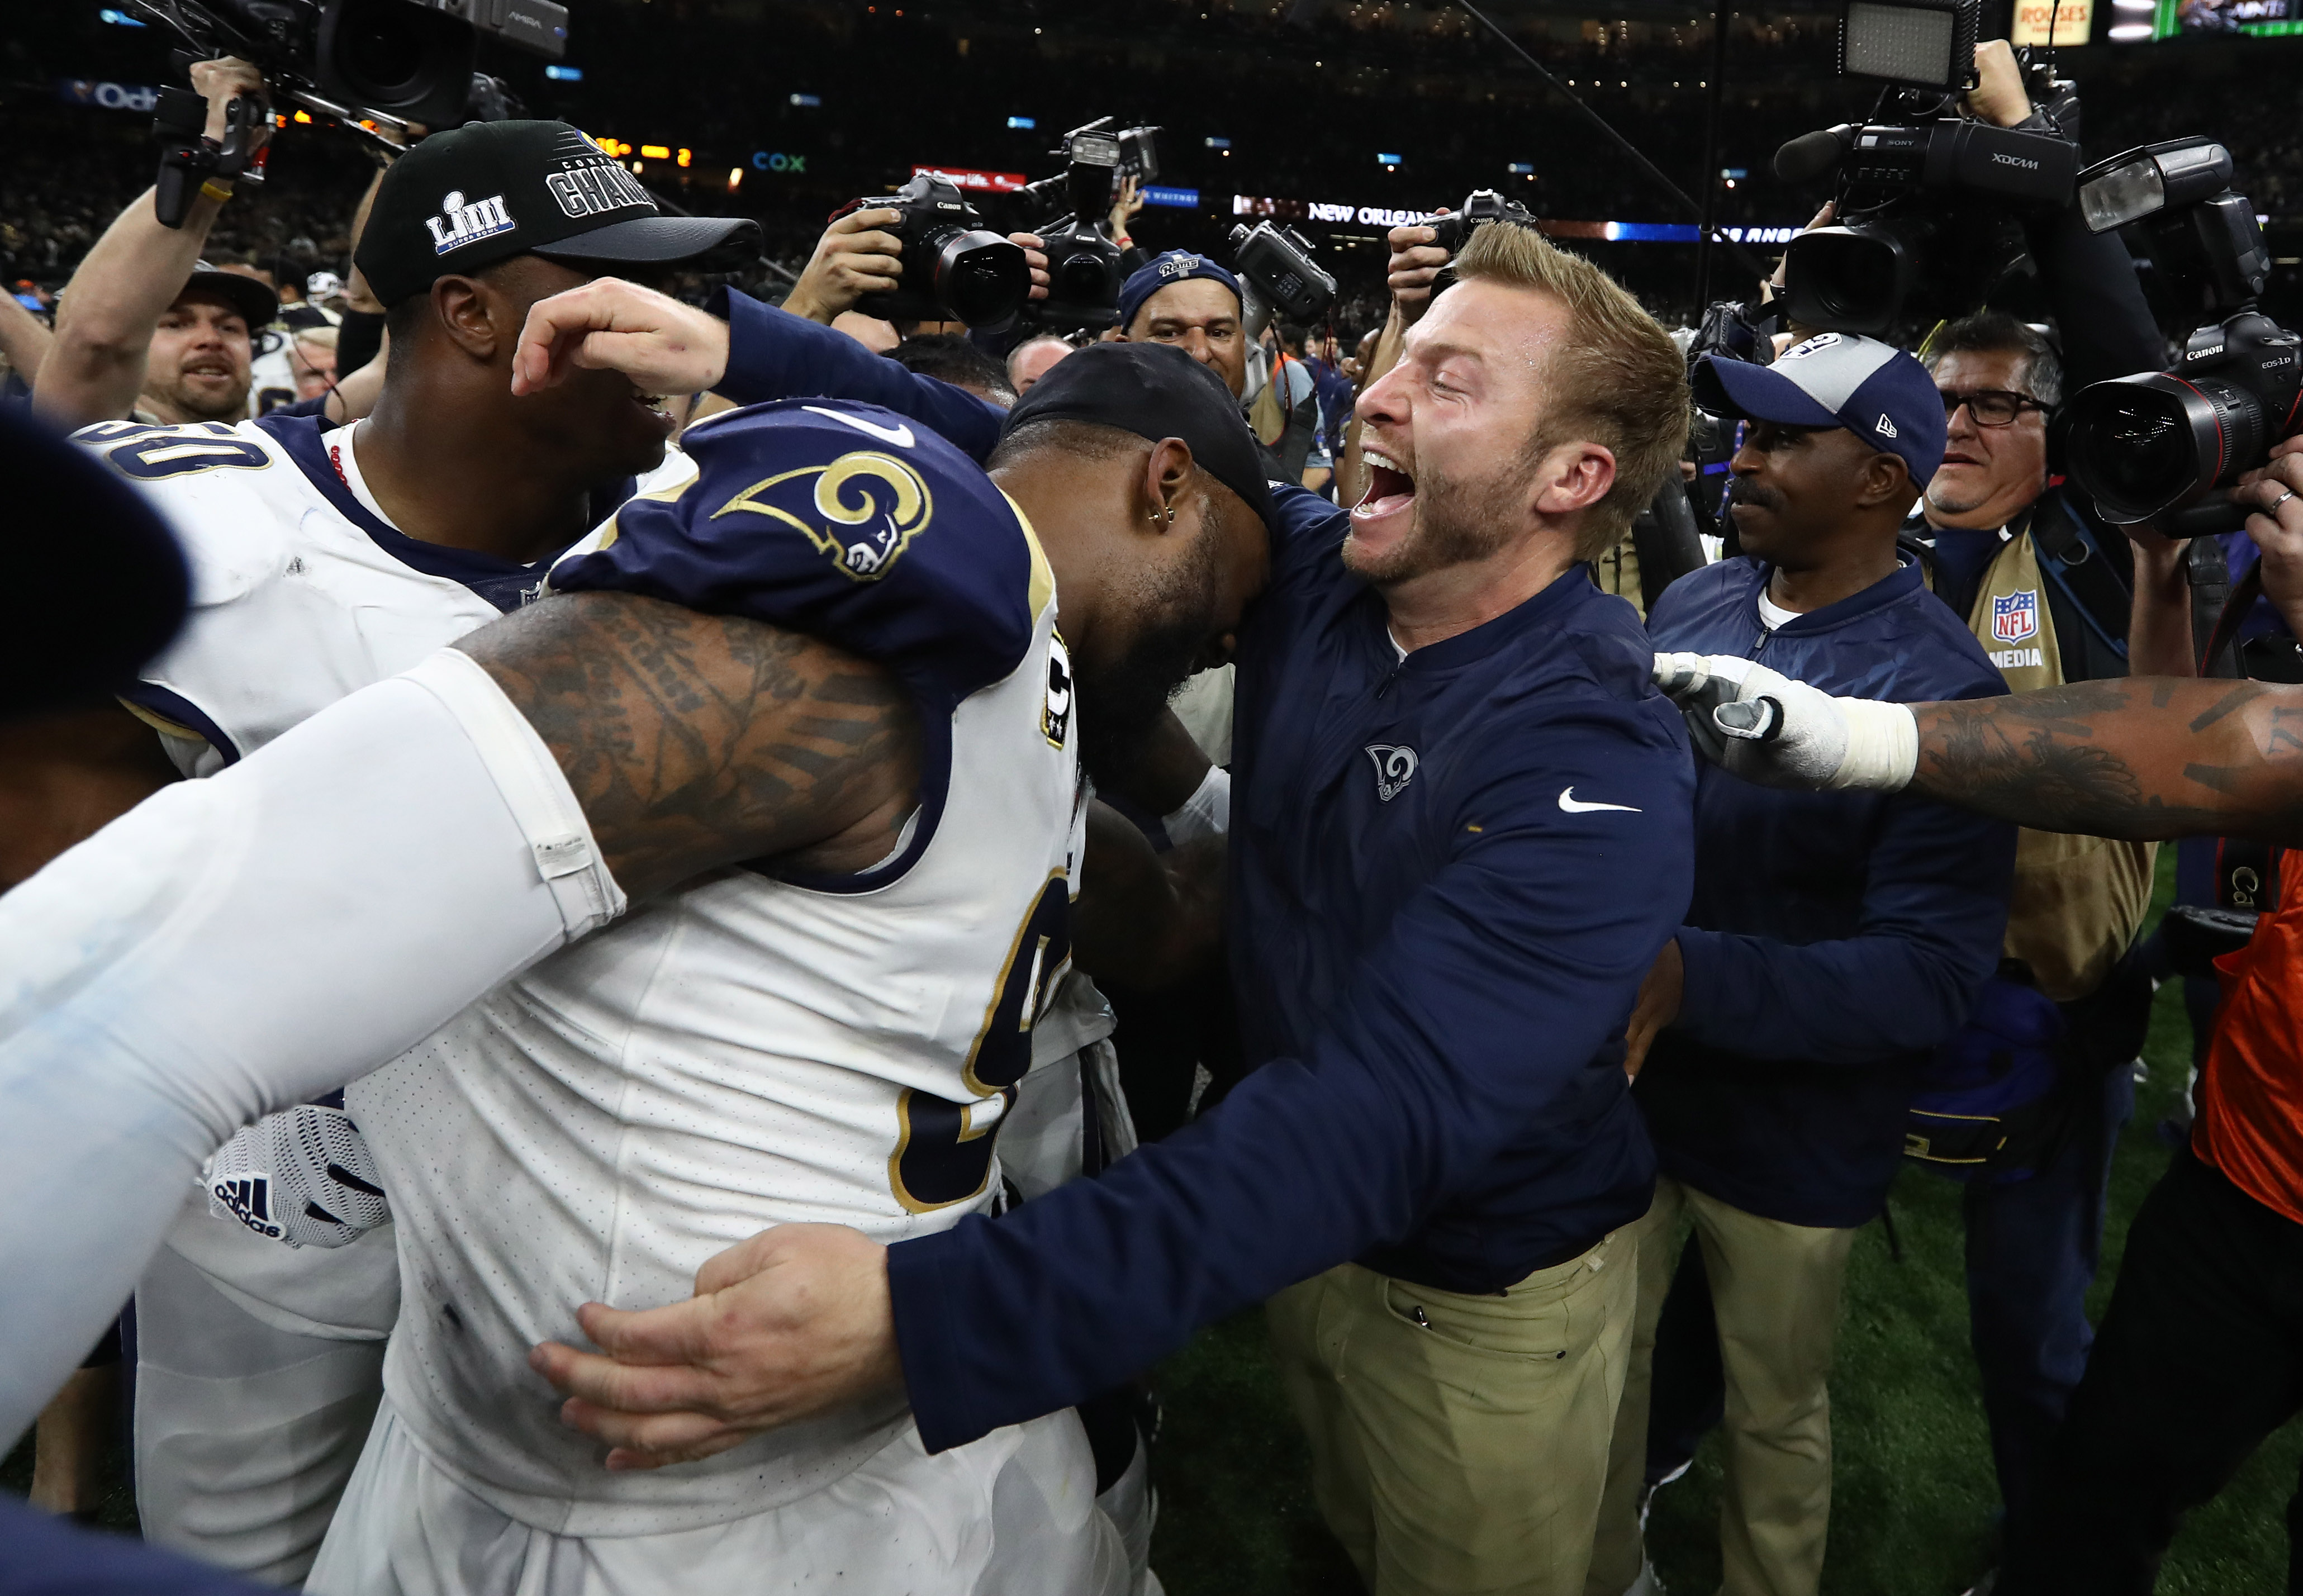 Los Angeles Rams HC Sean McVay celebrates with DT Michael Brockers after winning the NFC Championship game against the New Orleans Saints, Jan. 20, 2019.